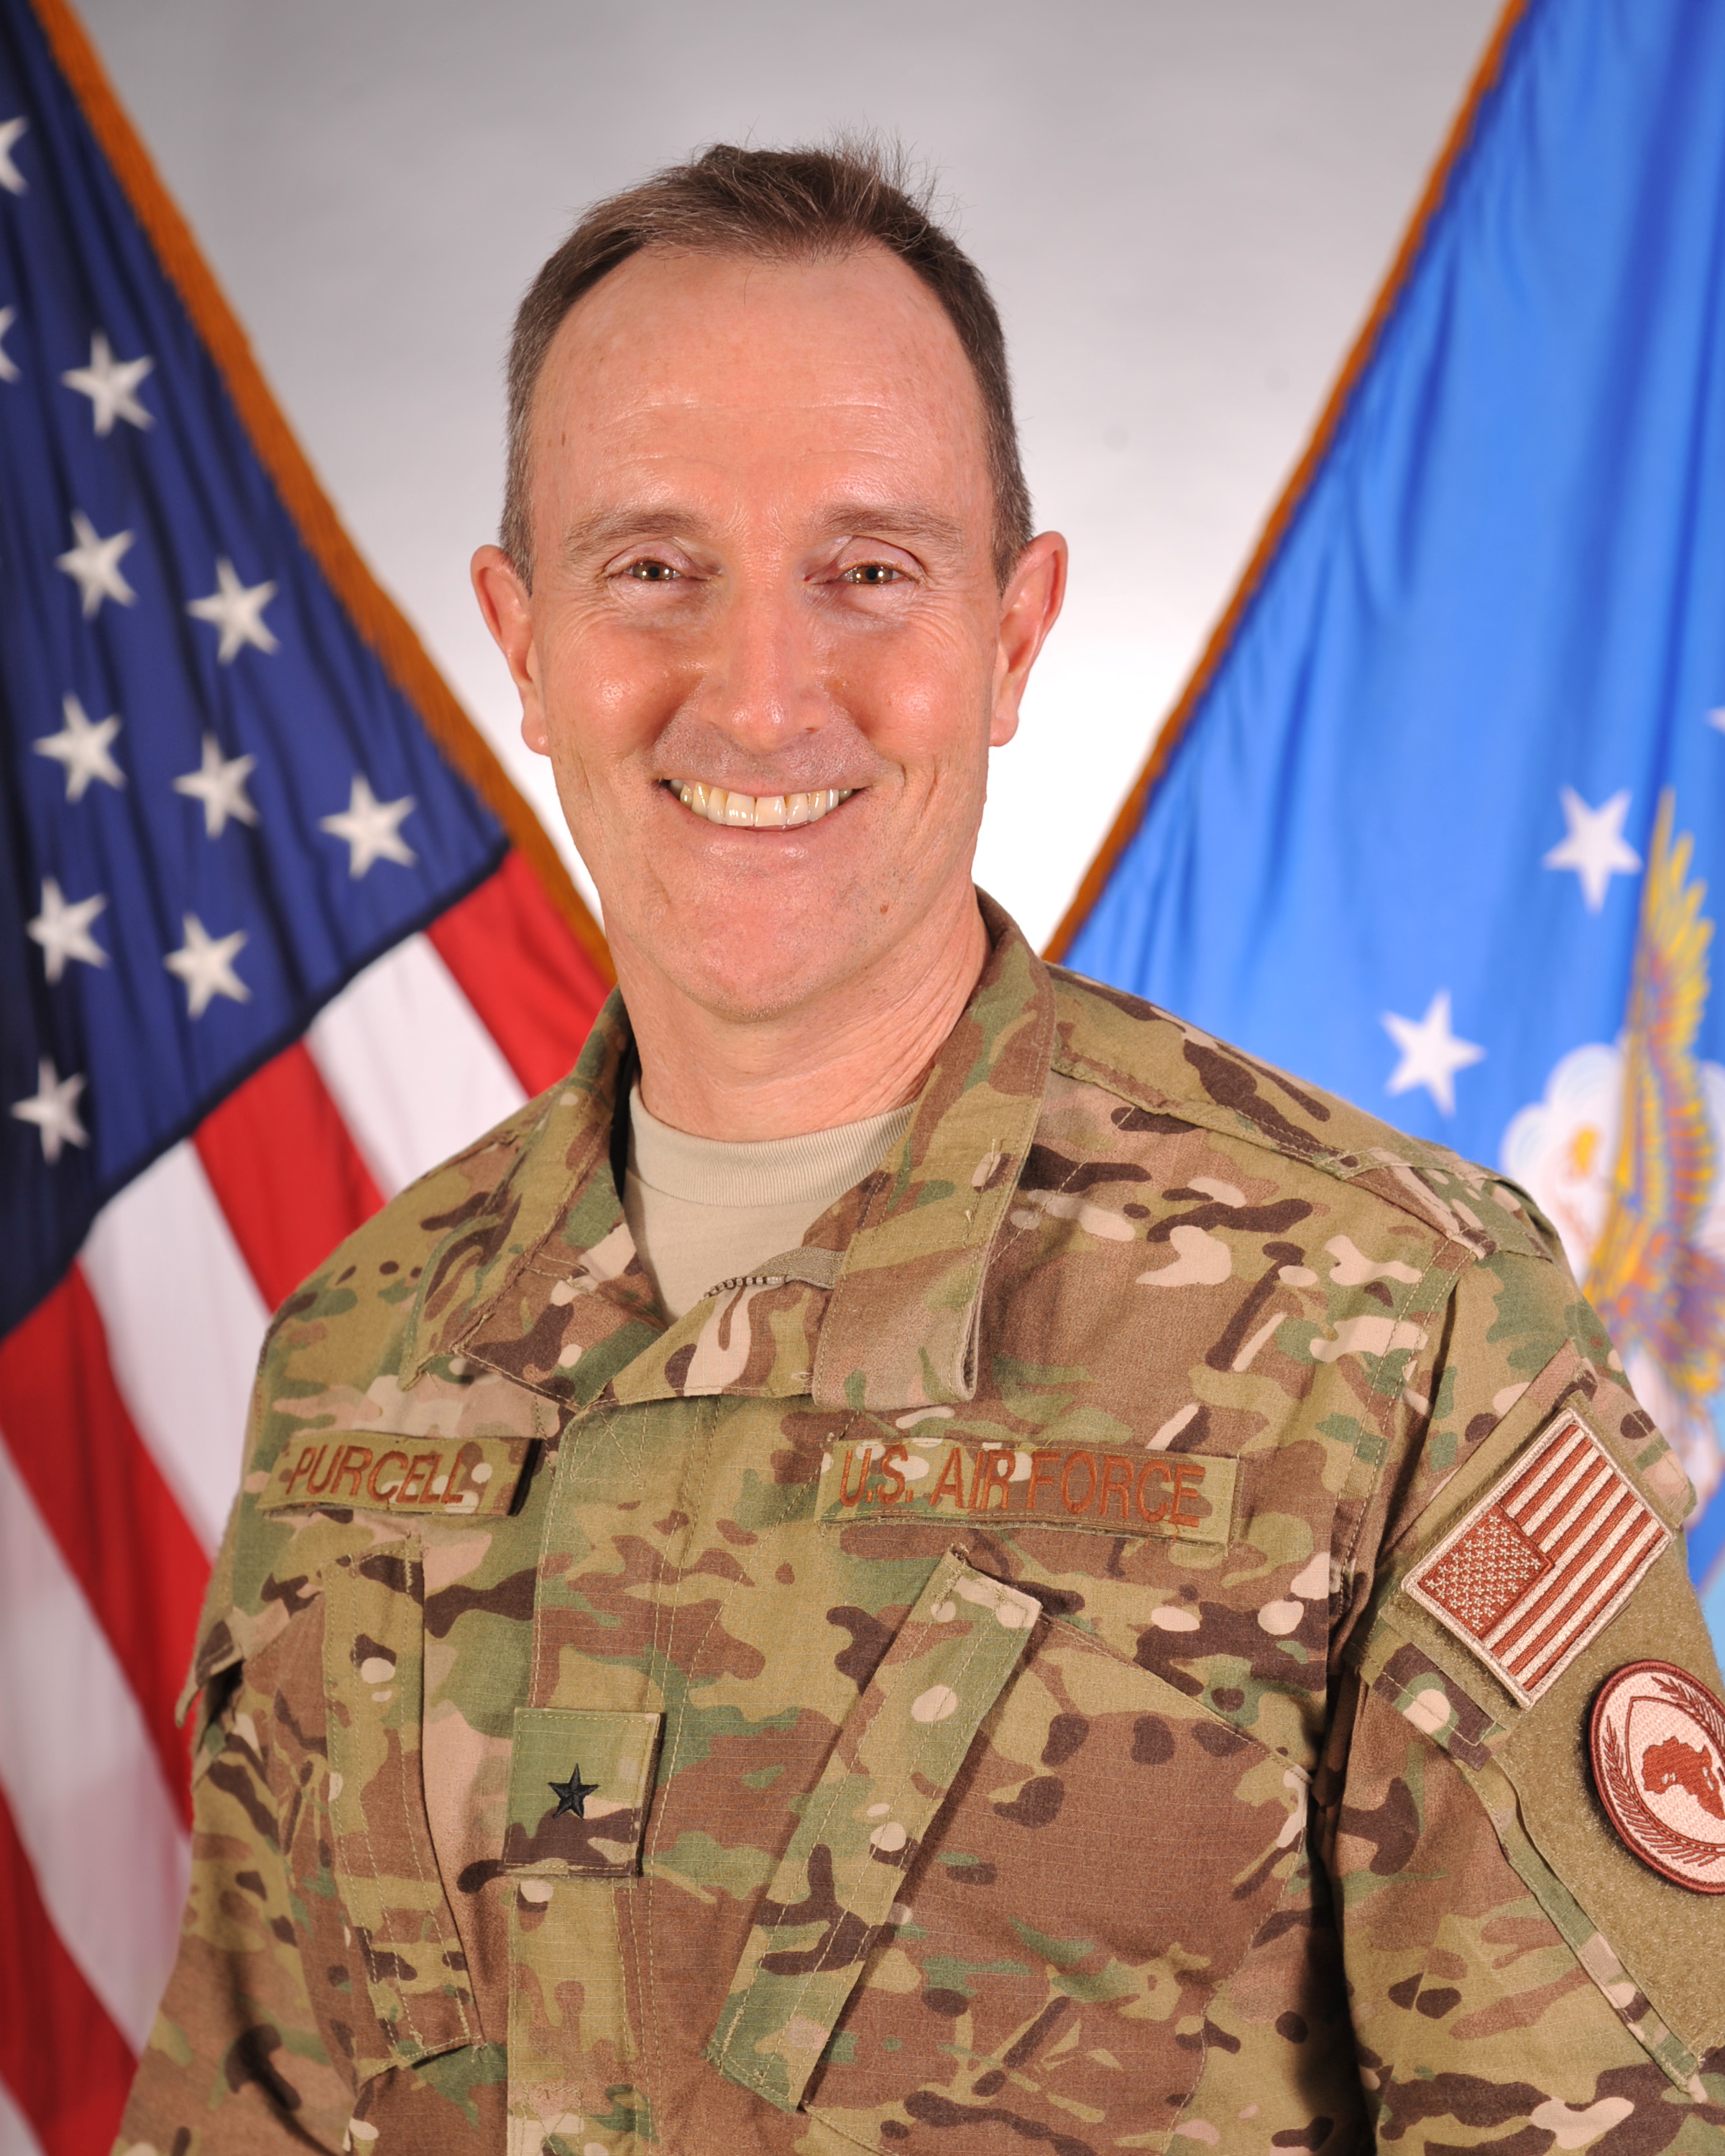 Brigadier General Phil Purcell is the Deputy Commander, Combined Joint Task Force-Horn of Africa, at Camp Lemonnier, Djibouti. In this position, he supports the CJTF-HOA Commander to counter violent extremism in East Africa. General Purcell is also responsible for developing relations with senior military leaders in African partner nations and directing CJTF staff and subordinate commanders' support to deployed personnel and units of all Services across the Horn of Africa.